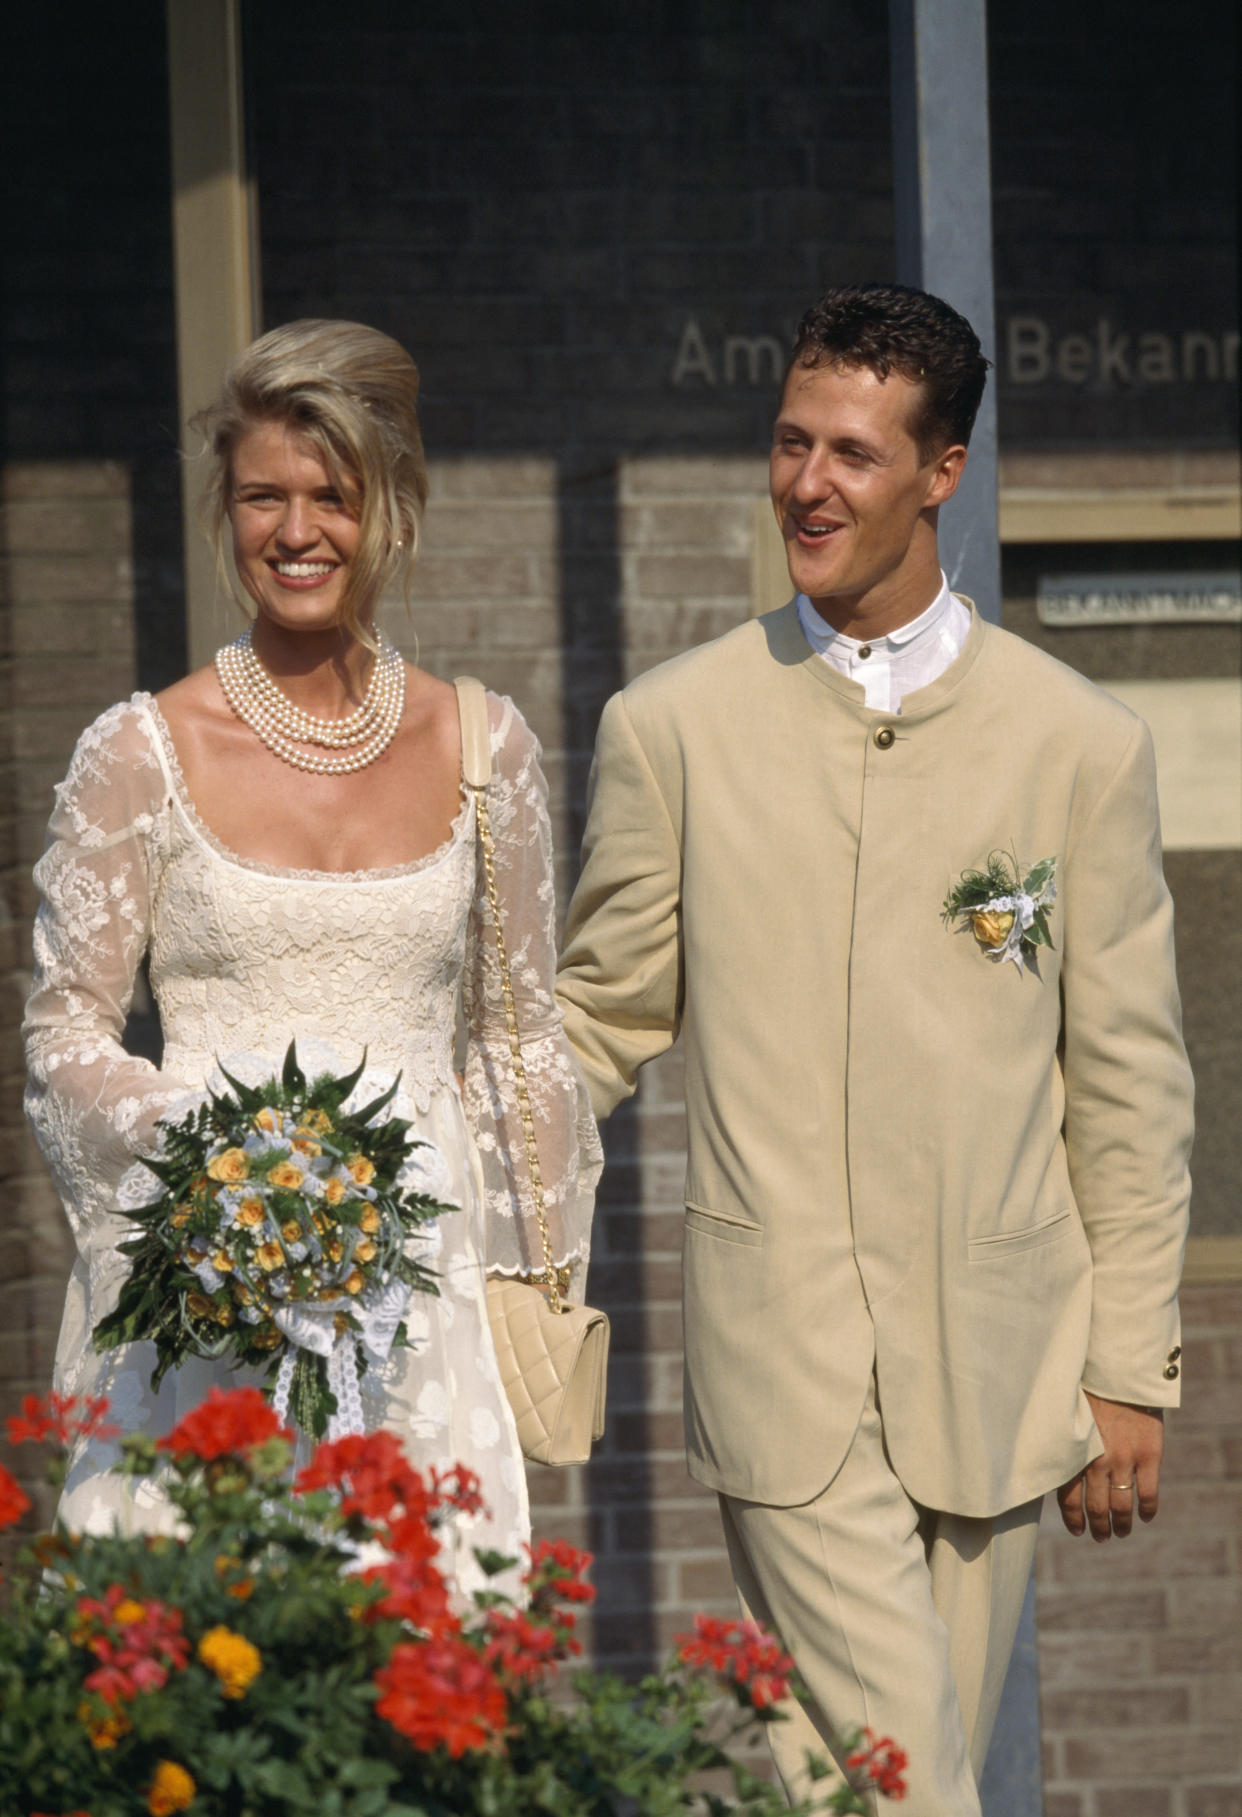 German Formula One driver Michael Schumacher spouses Corinna Betsch in Kerpen.  (Photo by Charles Caratini/Sygma via Getty Images)